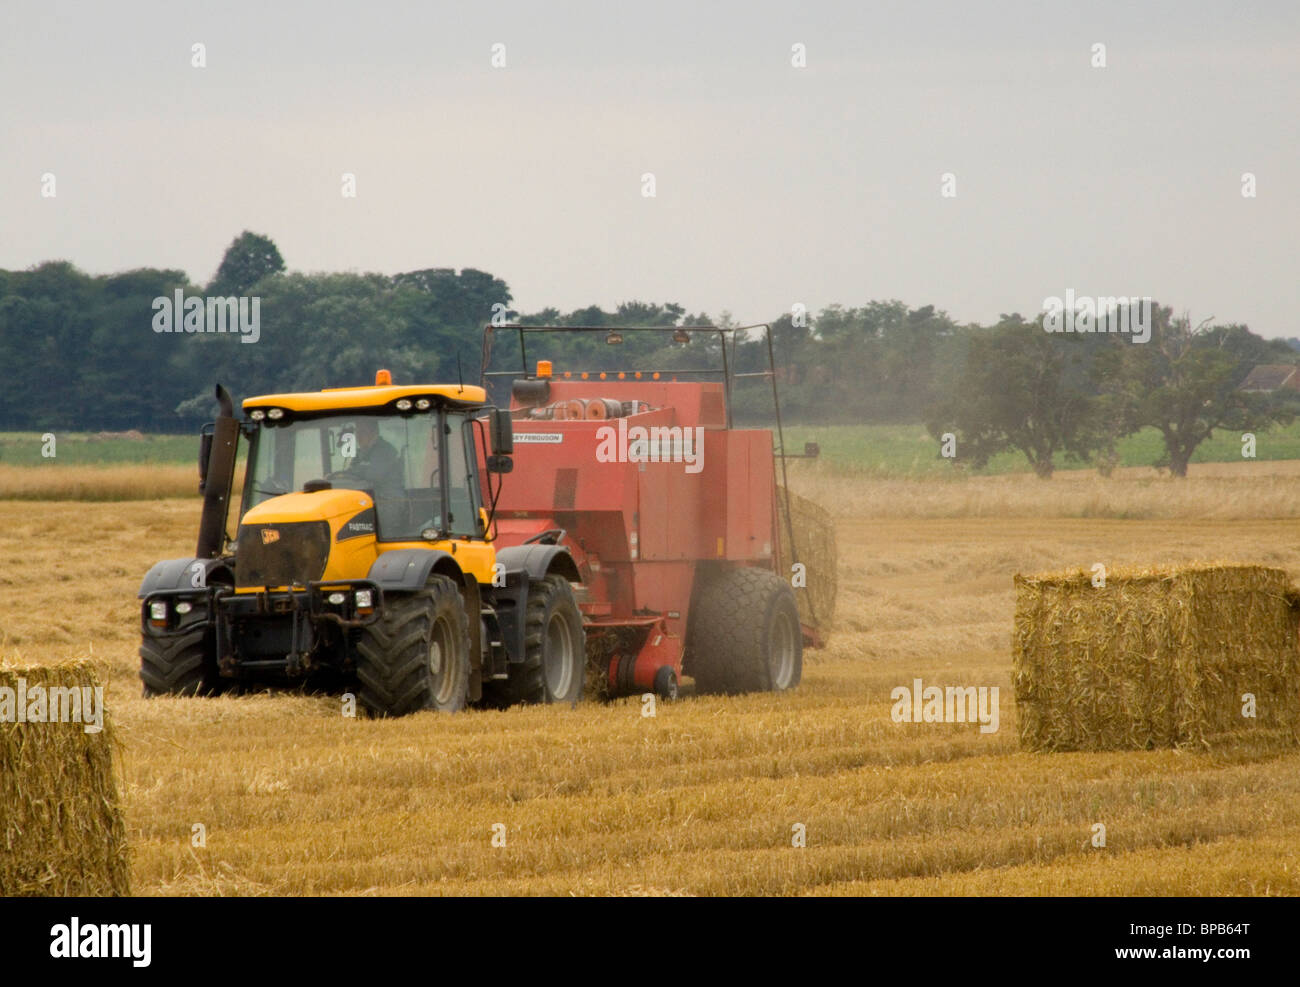 jcb 4x4 tractor with massey ferguson 190 baler attached working in a rh alamy com Vintage Massey Ferguson Baler Massey Ferguson 1745 Baler